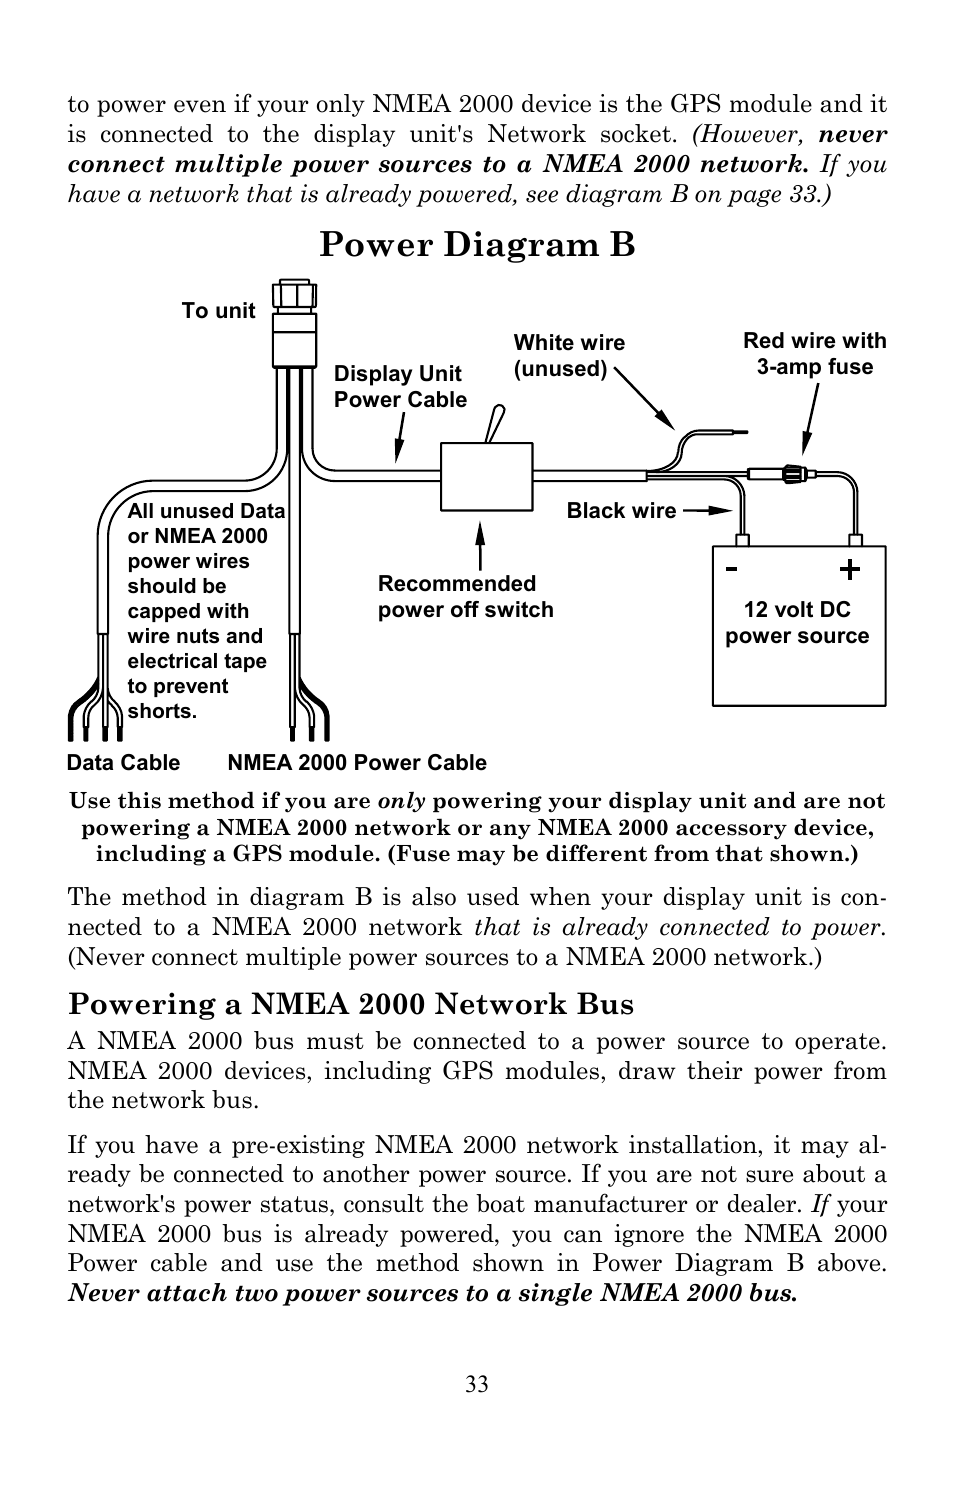 medium resolution of power diagram powering a nmea network bus lowrance electronic user manual page png 954x1487 lowrance nmea